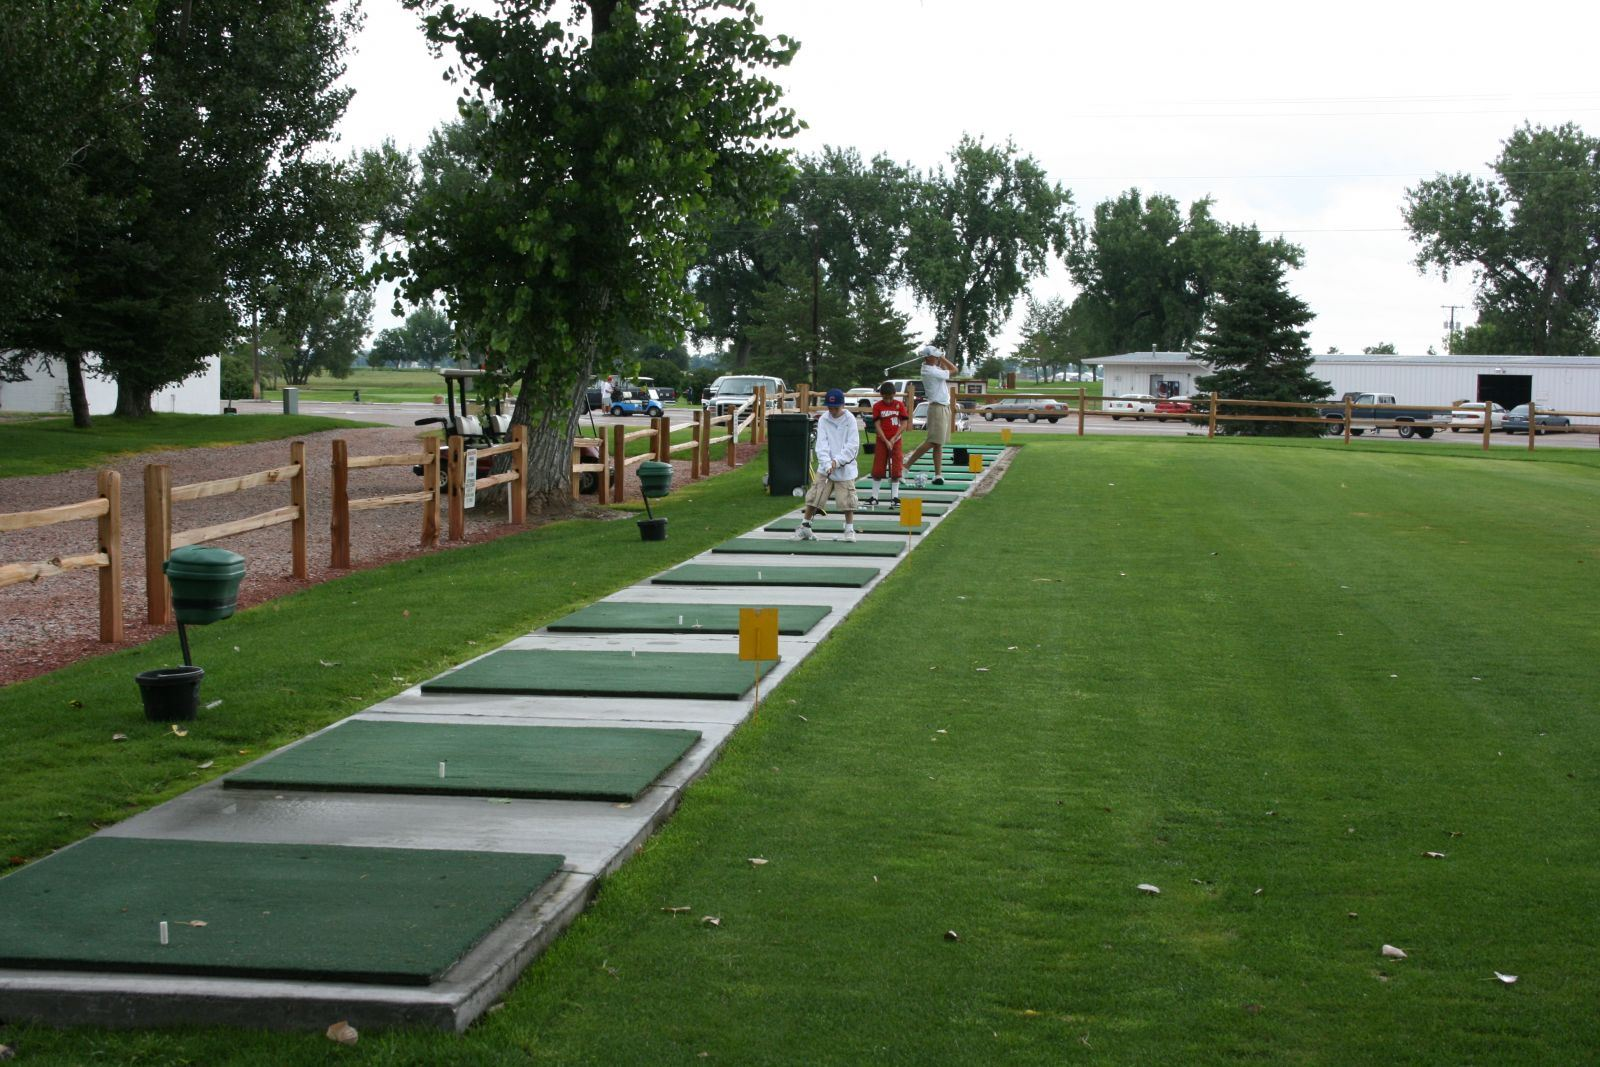 People at Driving Range - Students taking lesson may choose to hit from mats or from grass.